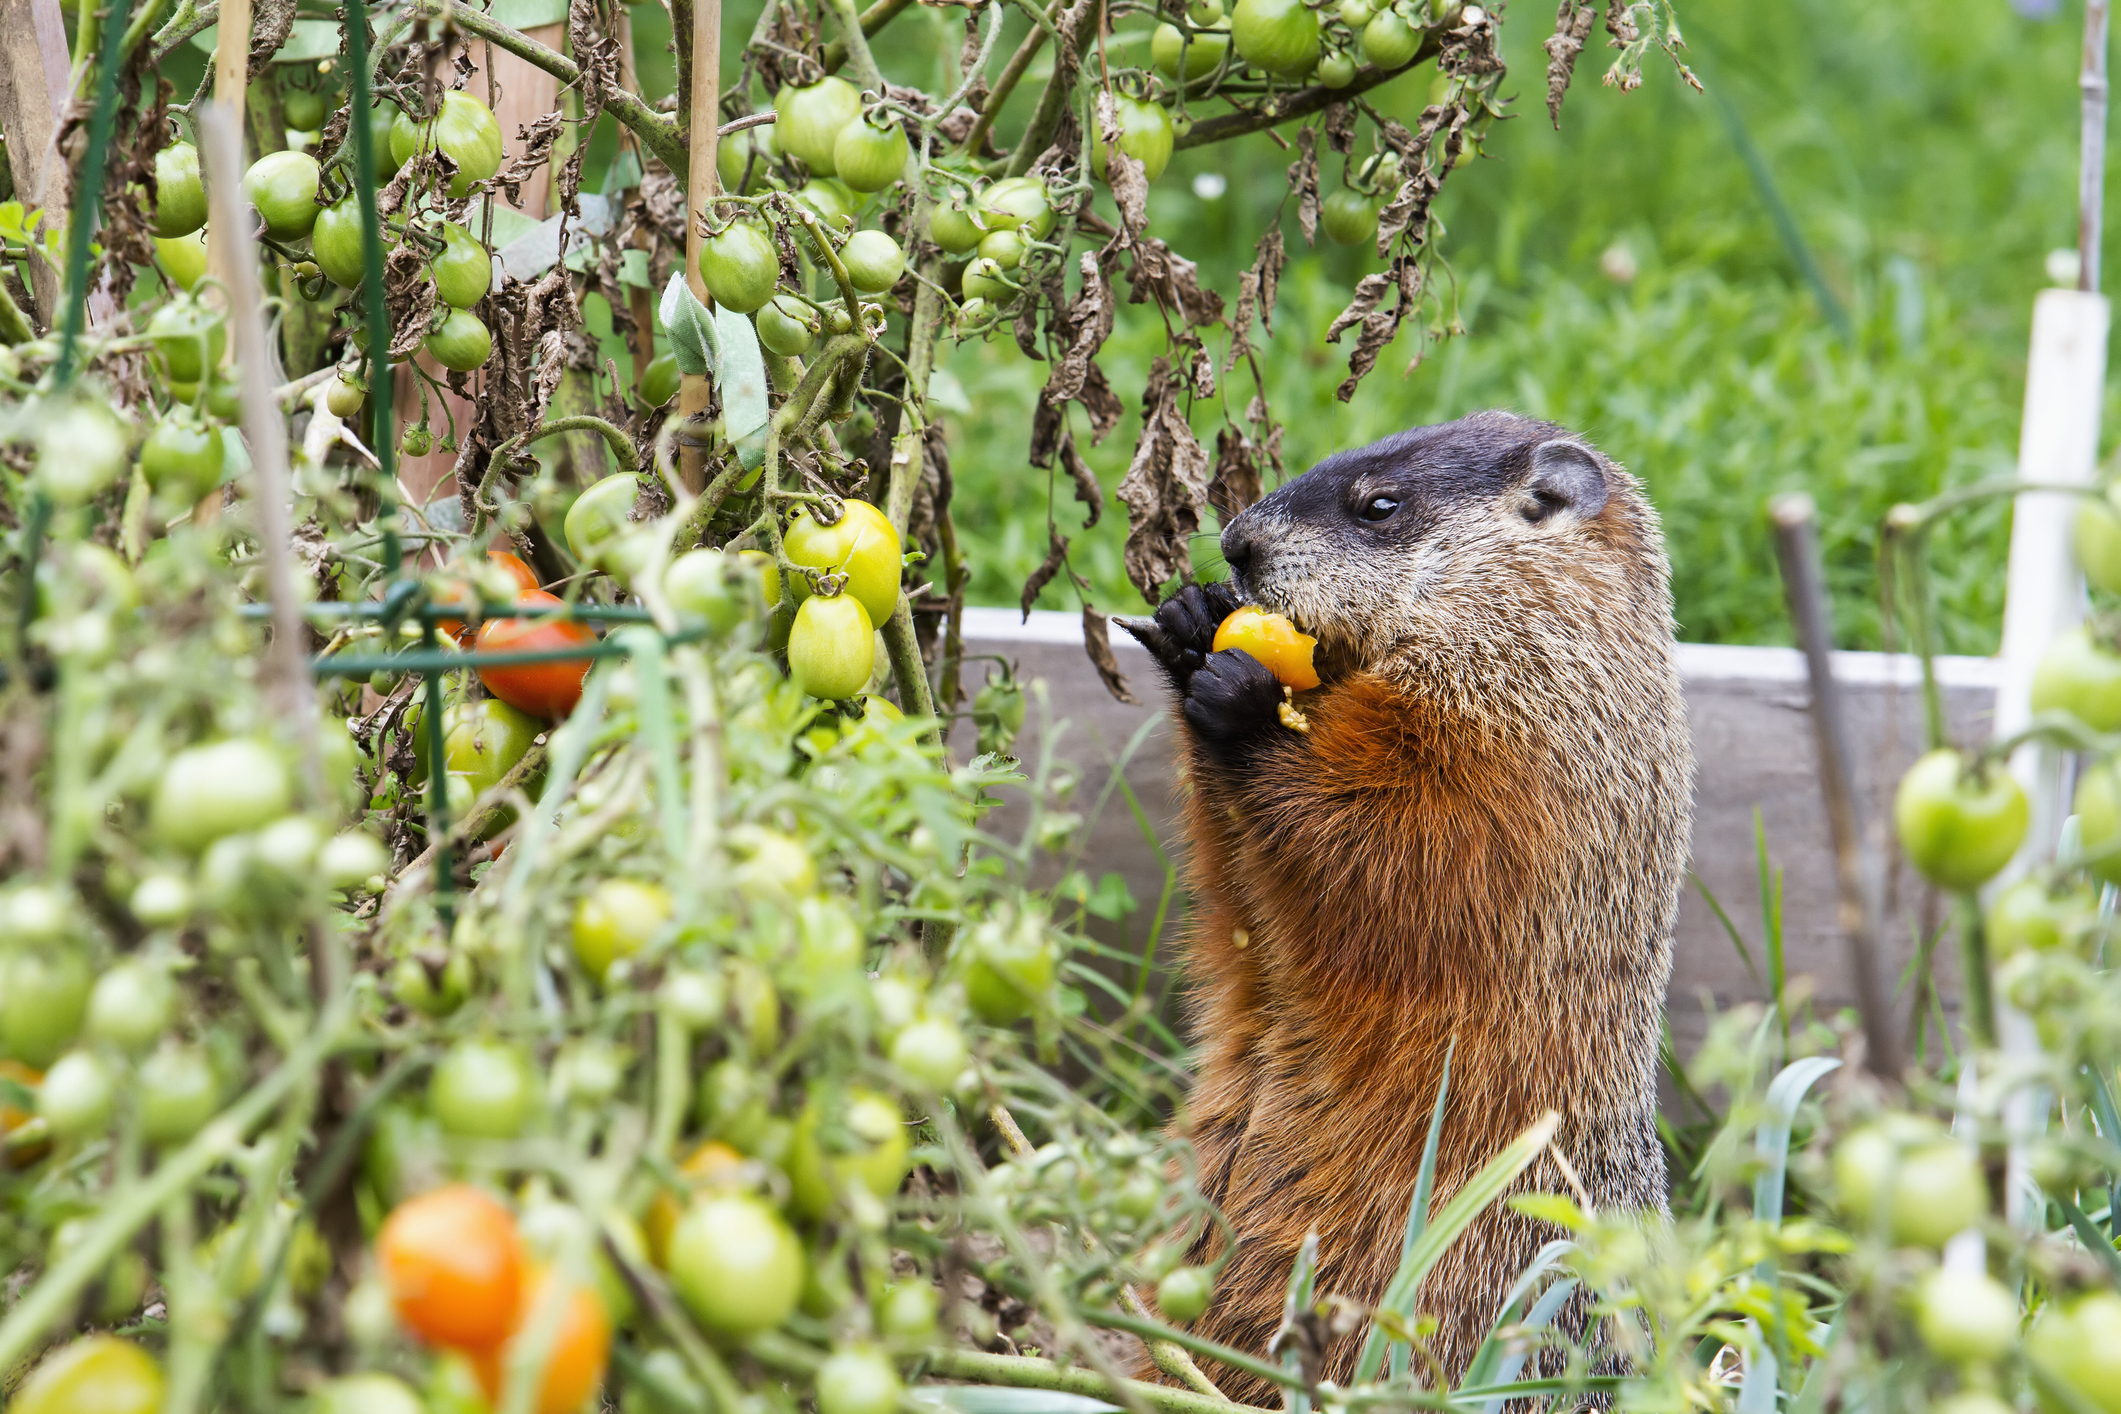 How to keep critters out of your garden ways to keep animals out of your vegetable garden - Garden ideas to keep animals out ...